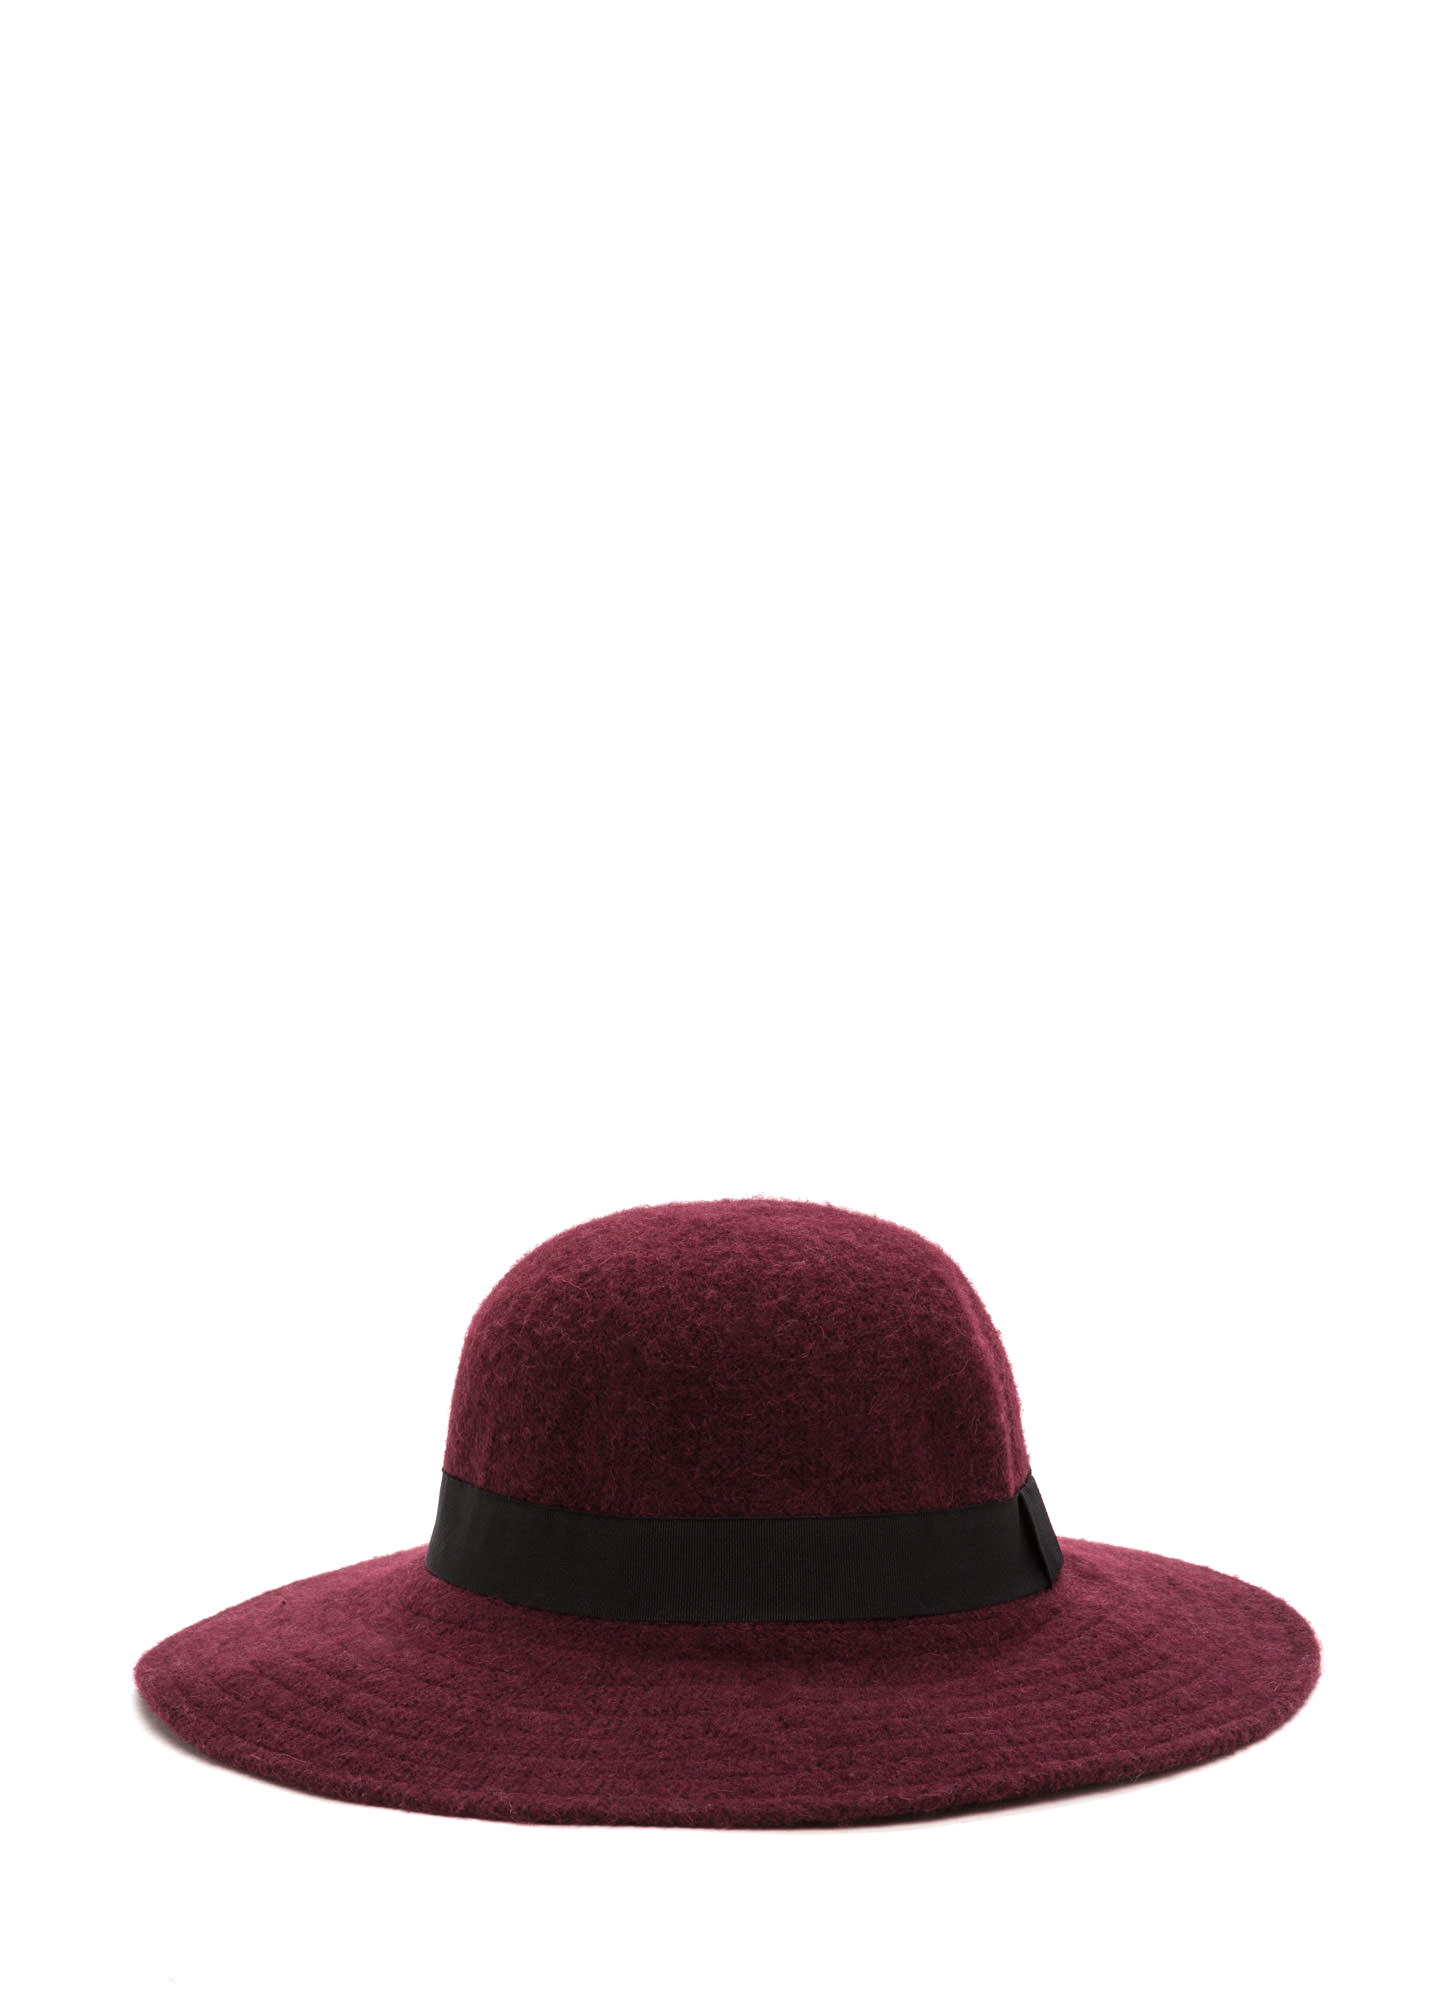 Park Slope Trip Wide Brim Wool Hat BURGUNDY